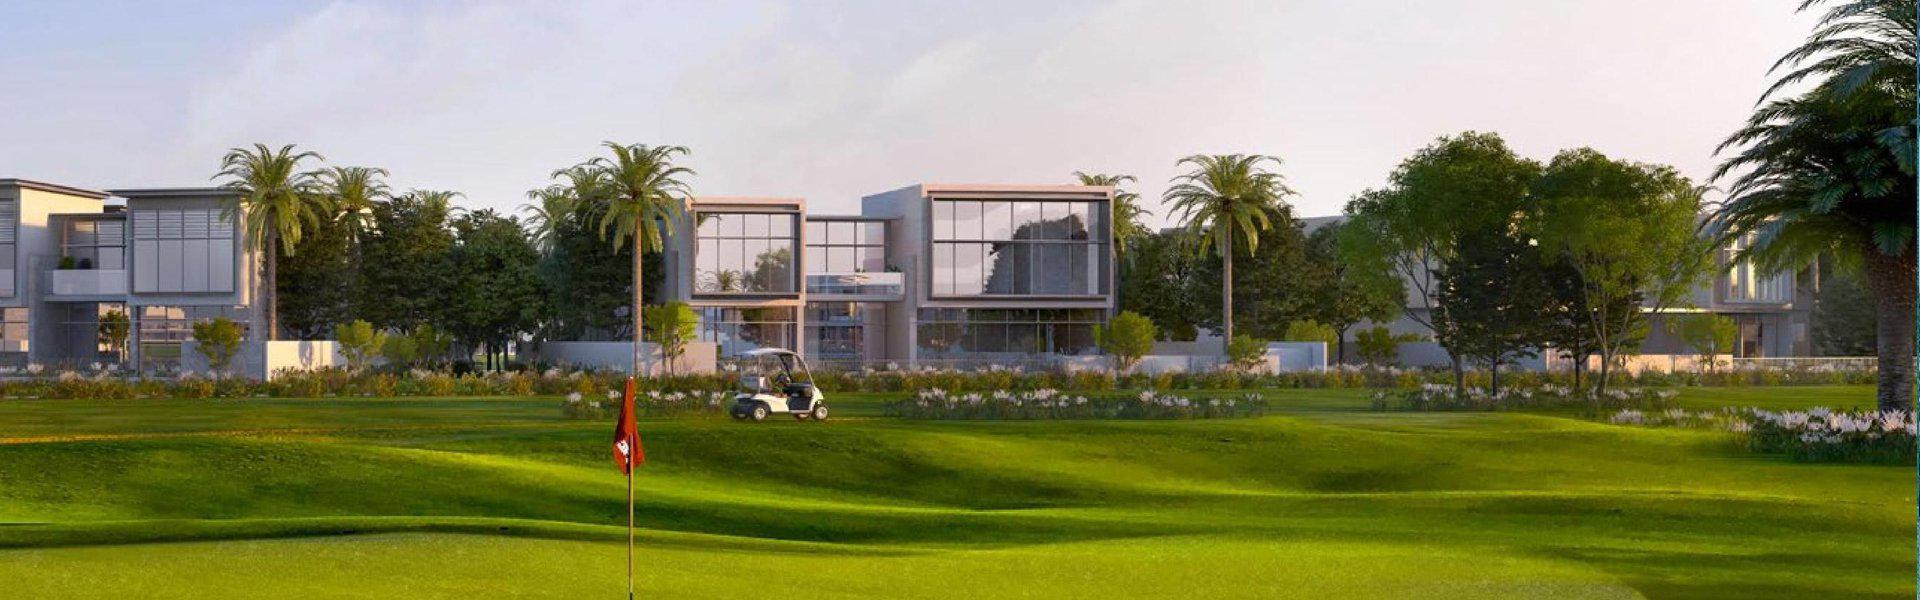 Golf Place Villas